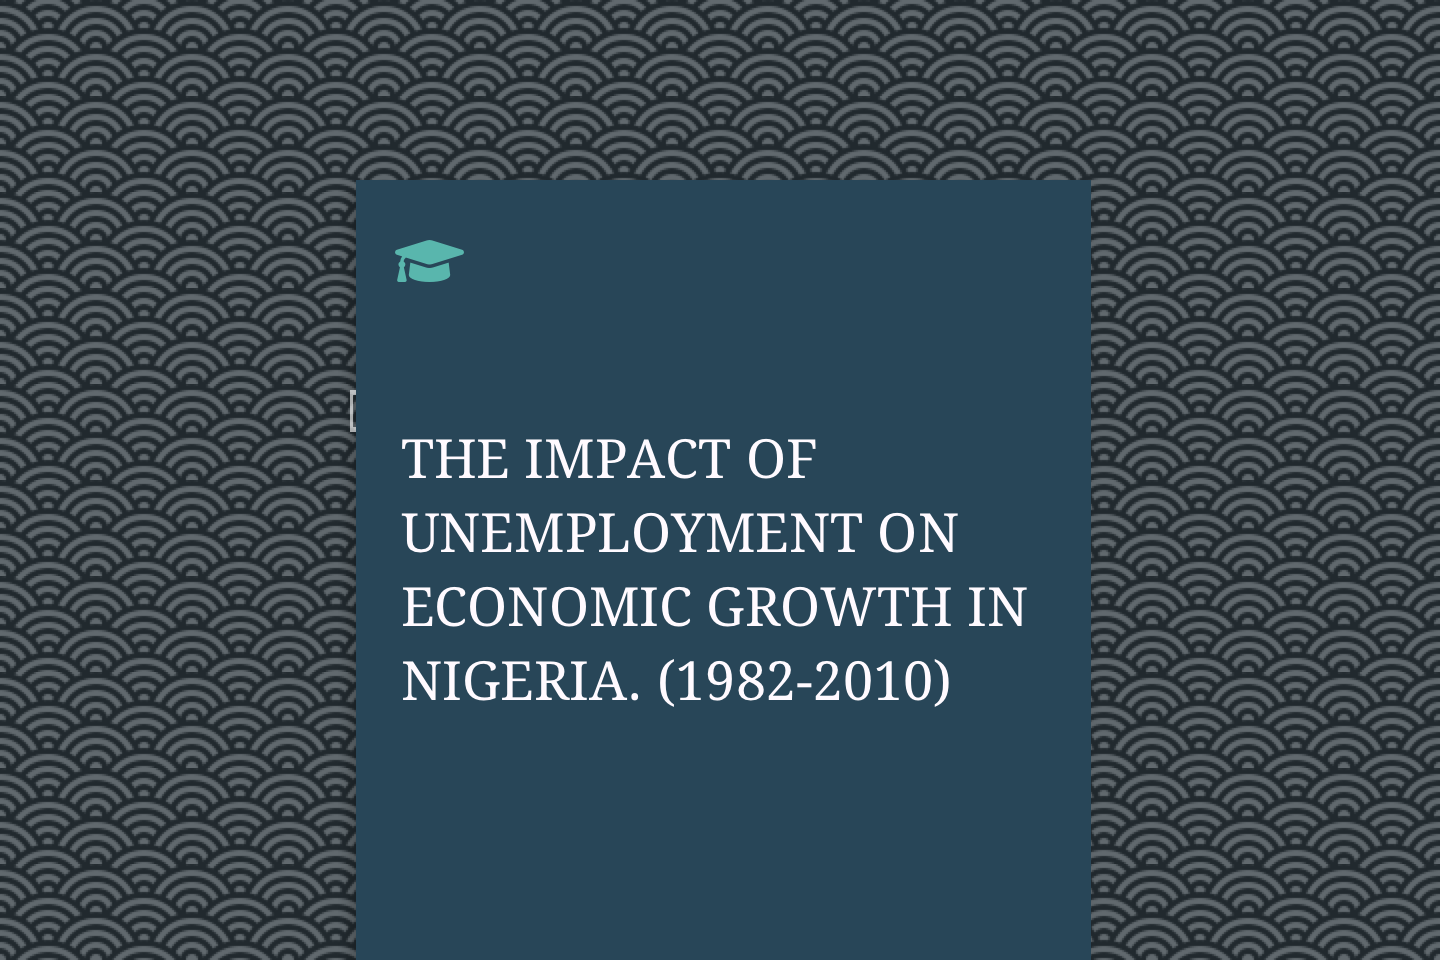 THE IMPACT OF UNEMPLOYMENT ON ECONOMIC GROWTH IN NIGERIA. (1982-2010)